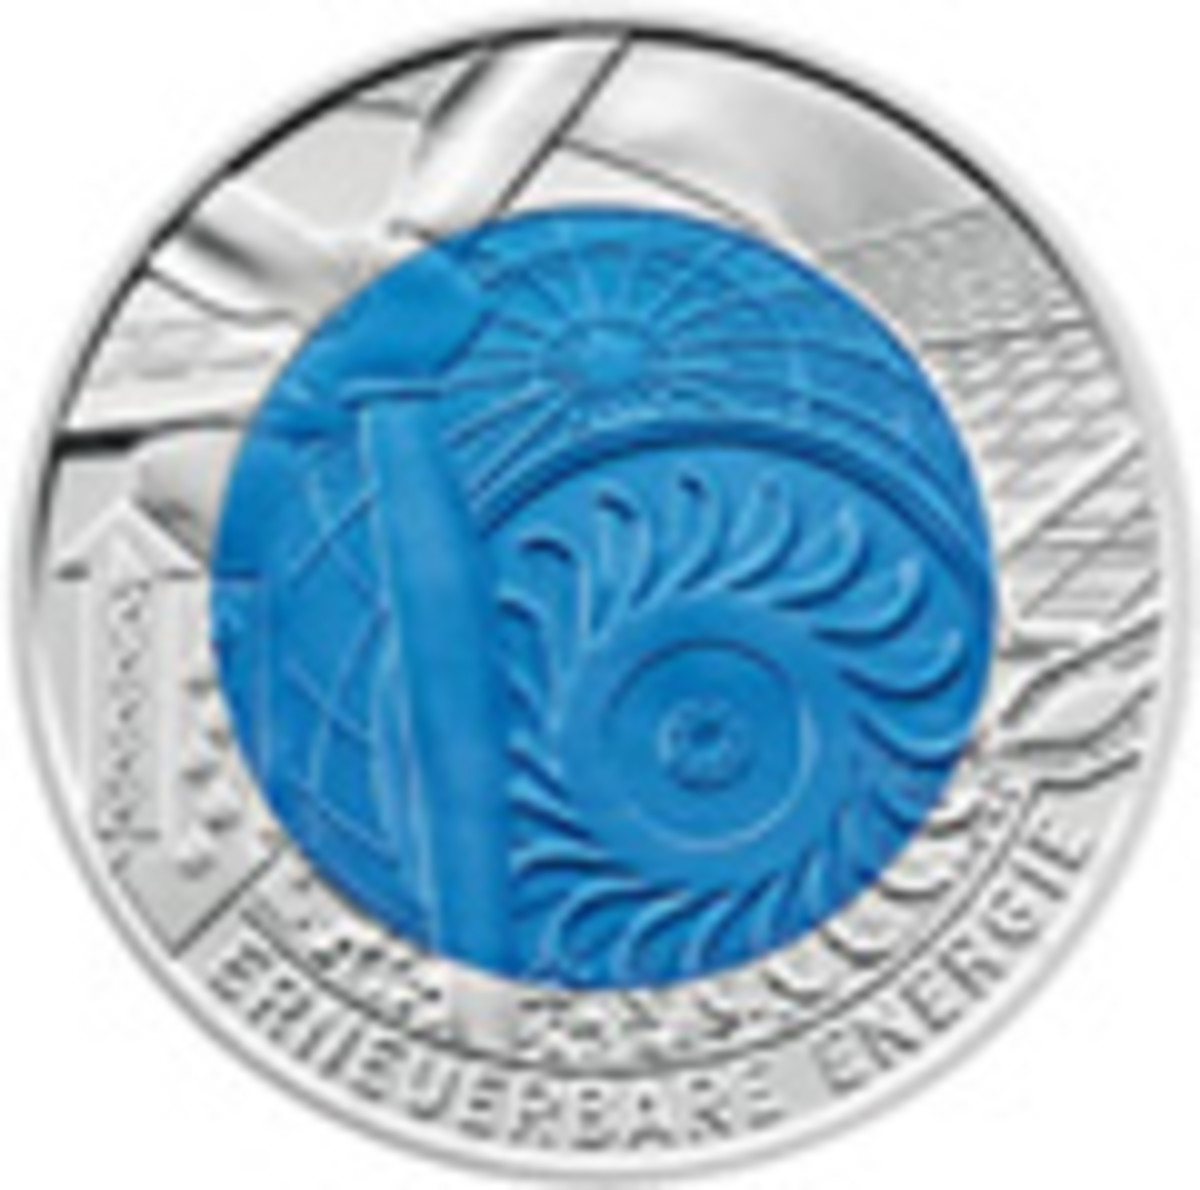 2010 Austria Silver-Niobium Renewable Energy Coin